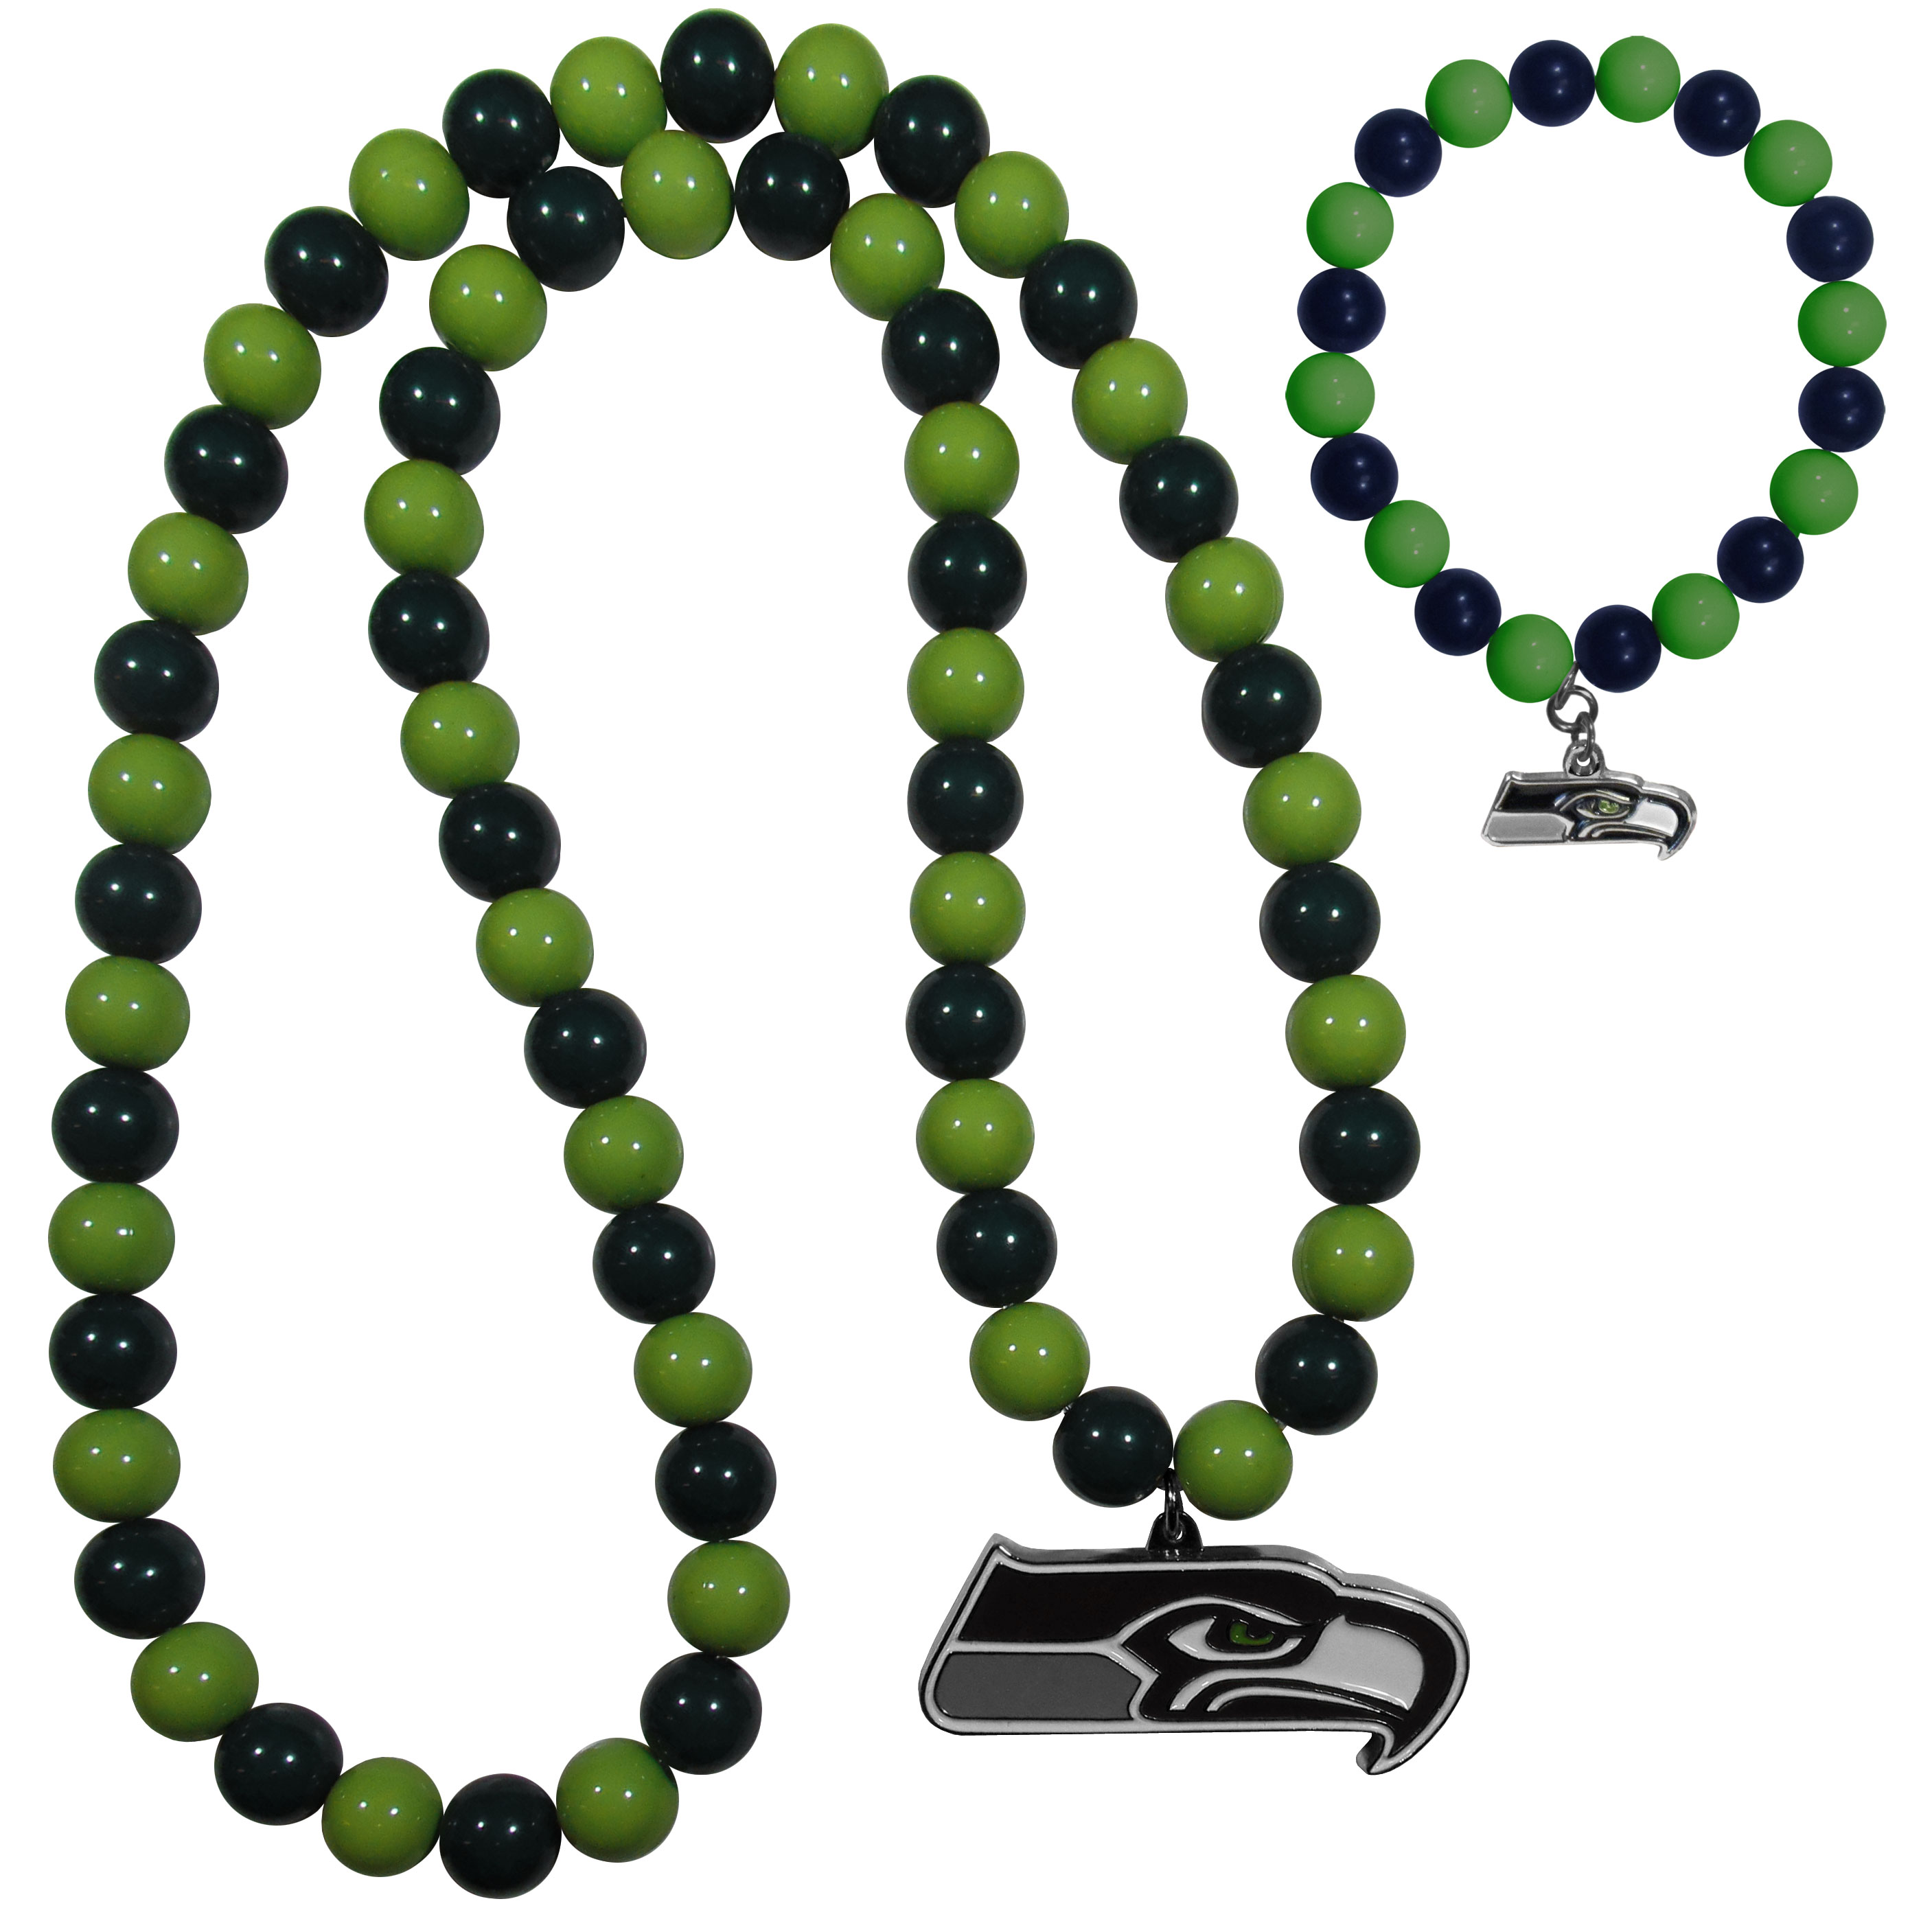 Seattle Seahawks Fan Bead Necklace and Bracelet Set - These fun and colorful Seattle Seahawks fan bead jewelry pieces are an eyecatching way to show off your team spirit. The striking necklace is a 24 inch string of alternating team colored beads with a large team pendant. The mathcing bracelet has alternating team colored beads on a stretch cord and features a matching team charm.